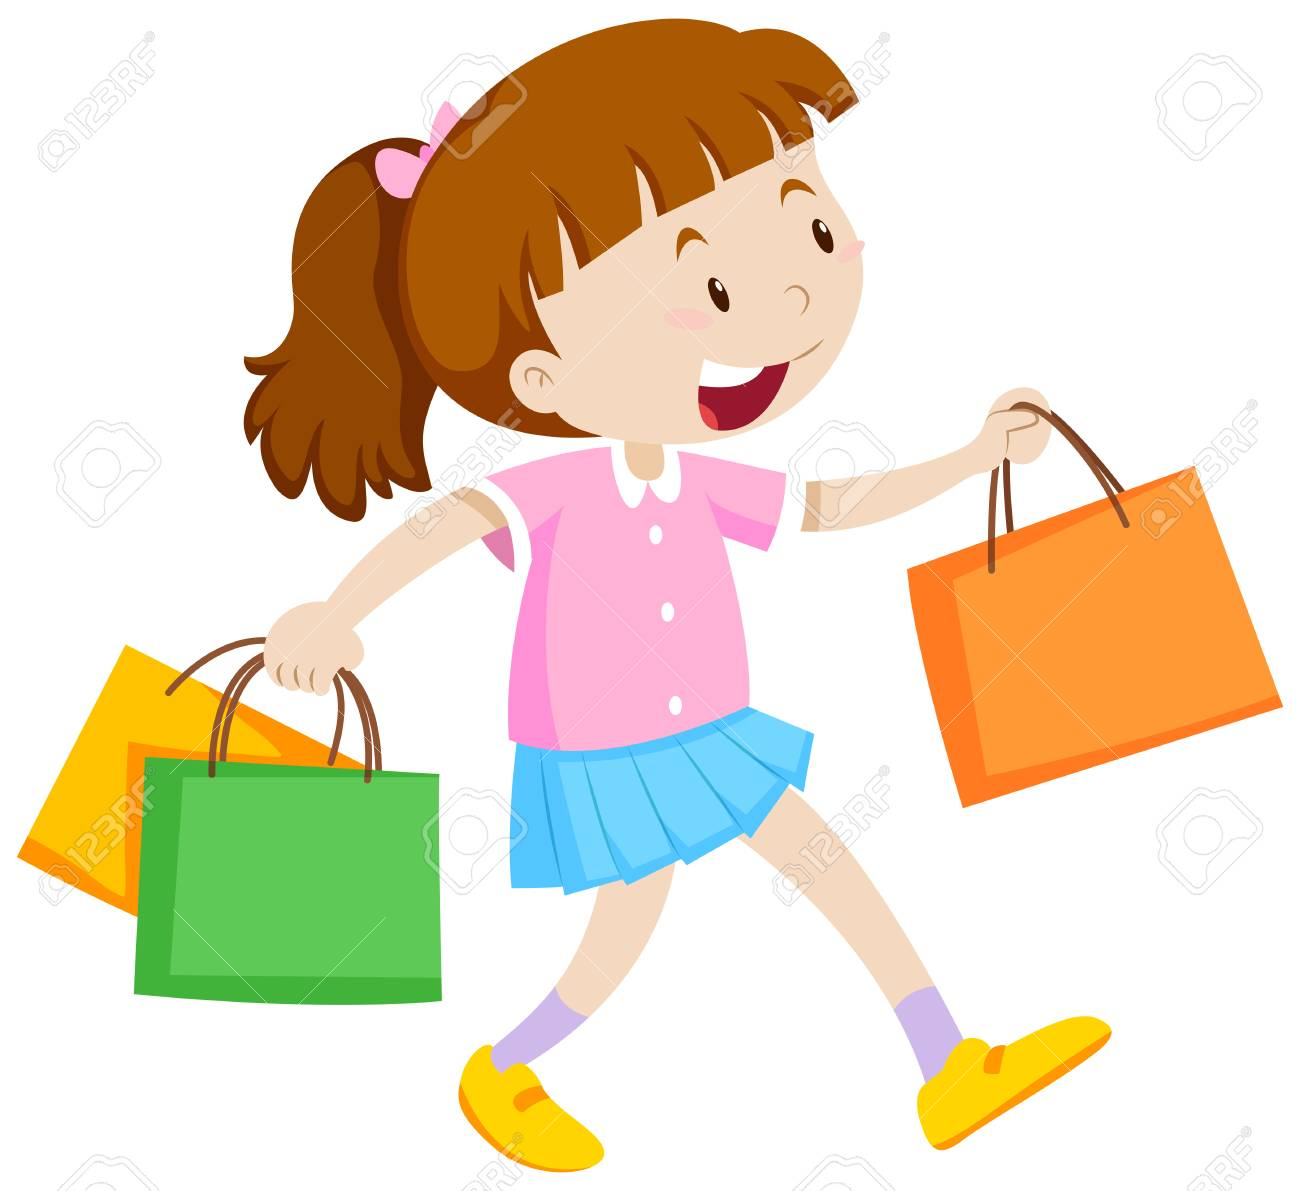 Little girl with three shopping bags illustration.